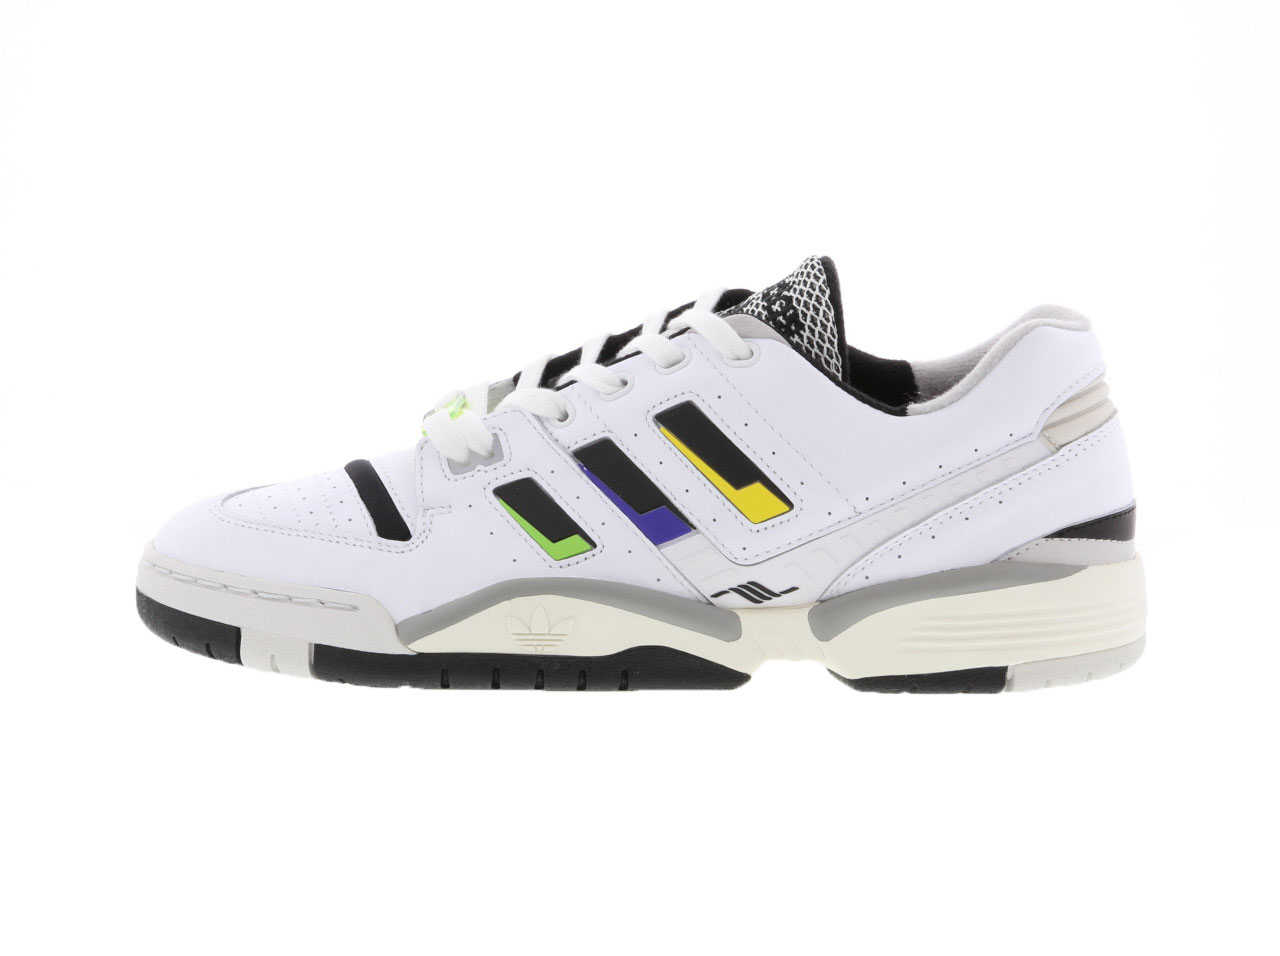 メンズ靴, スニーカー 40OFF!adidas TORSION COMP(EE7376)